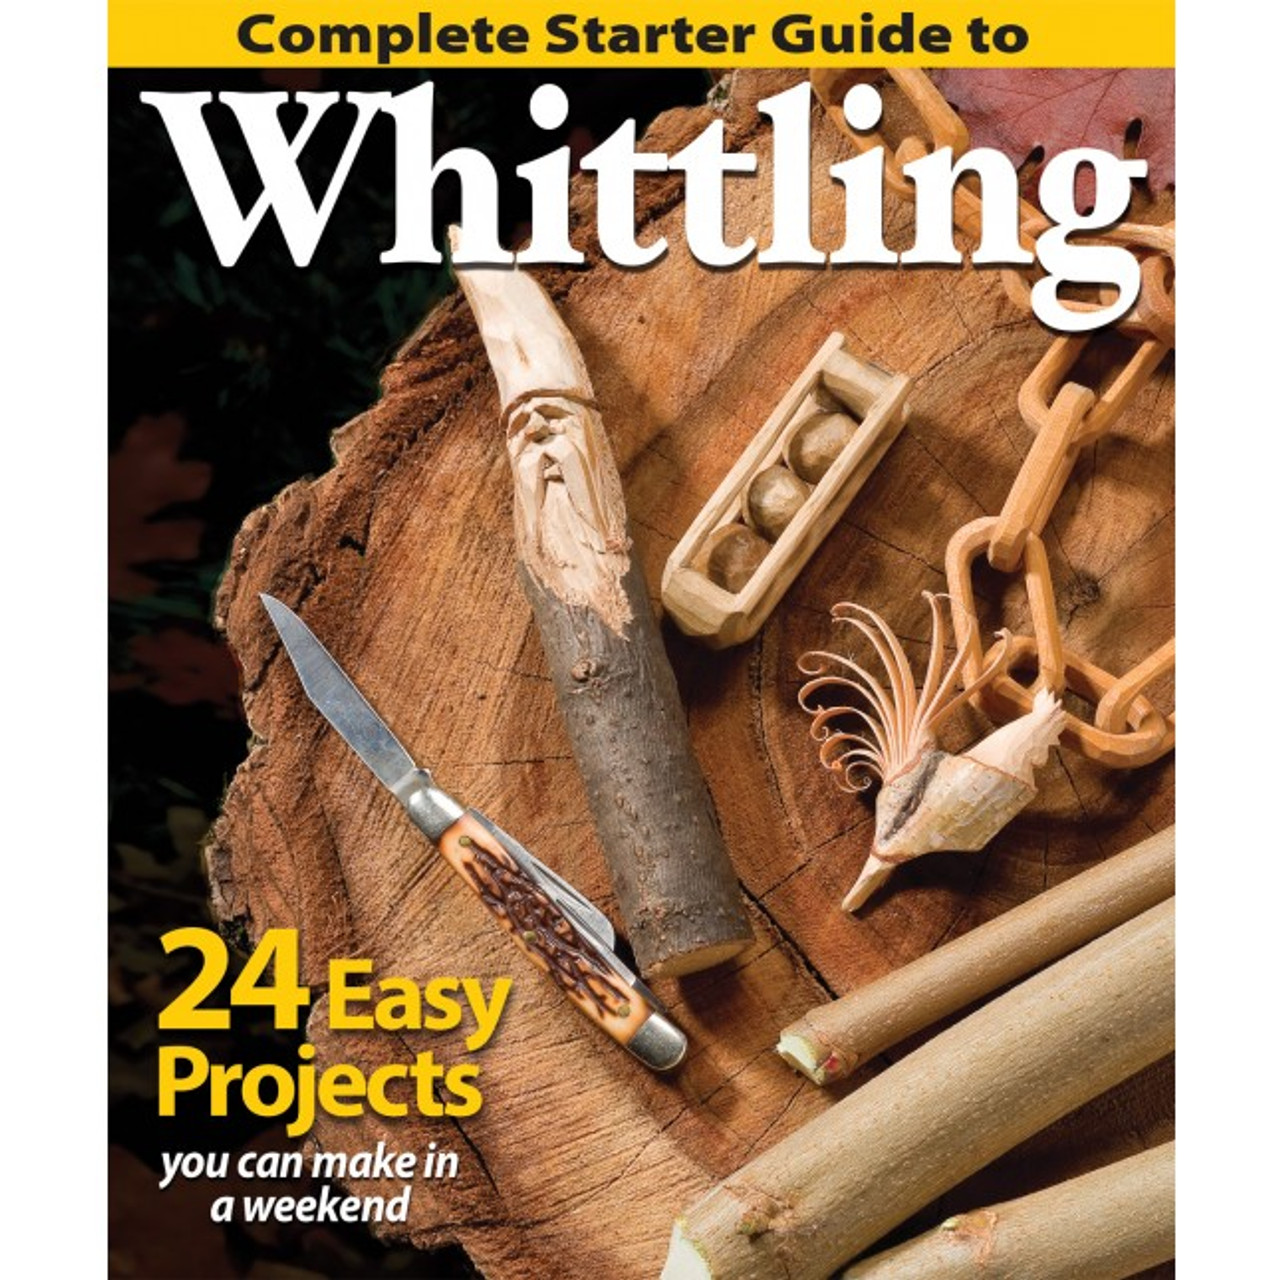 Complete Starter Guide To Whittling showing a wood spirit, balls in a box, and a chain made from wood with a pocket knife.